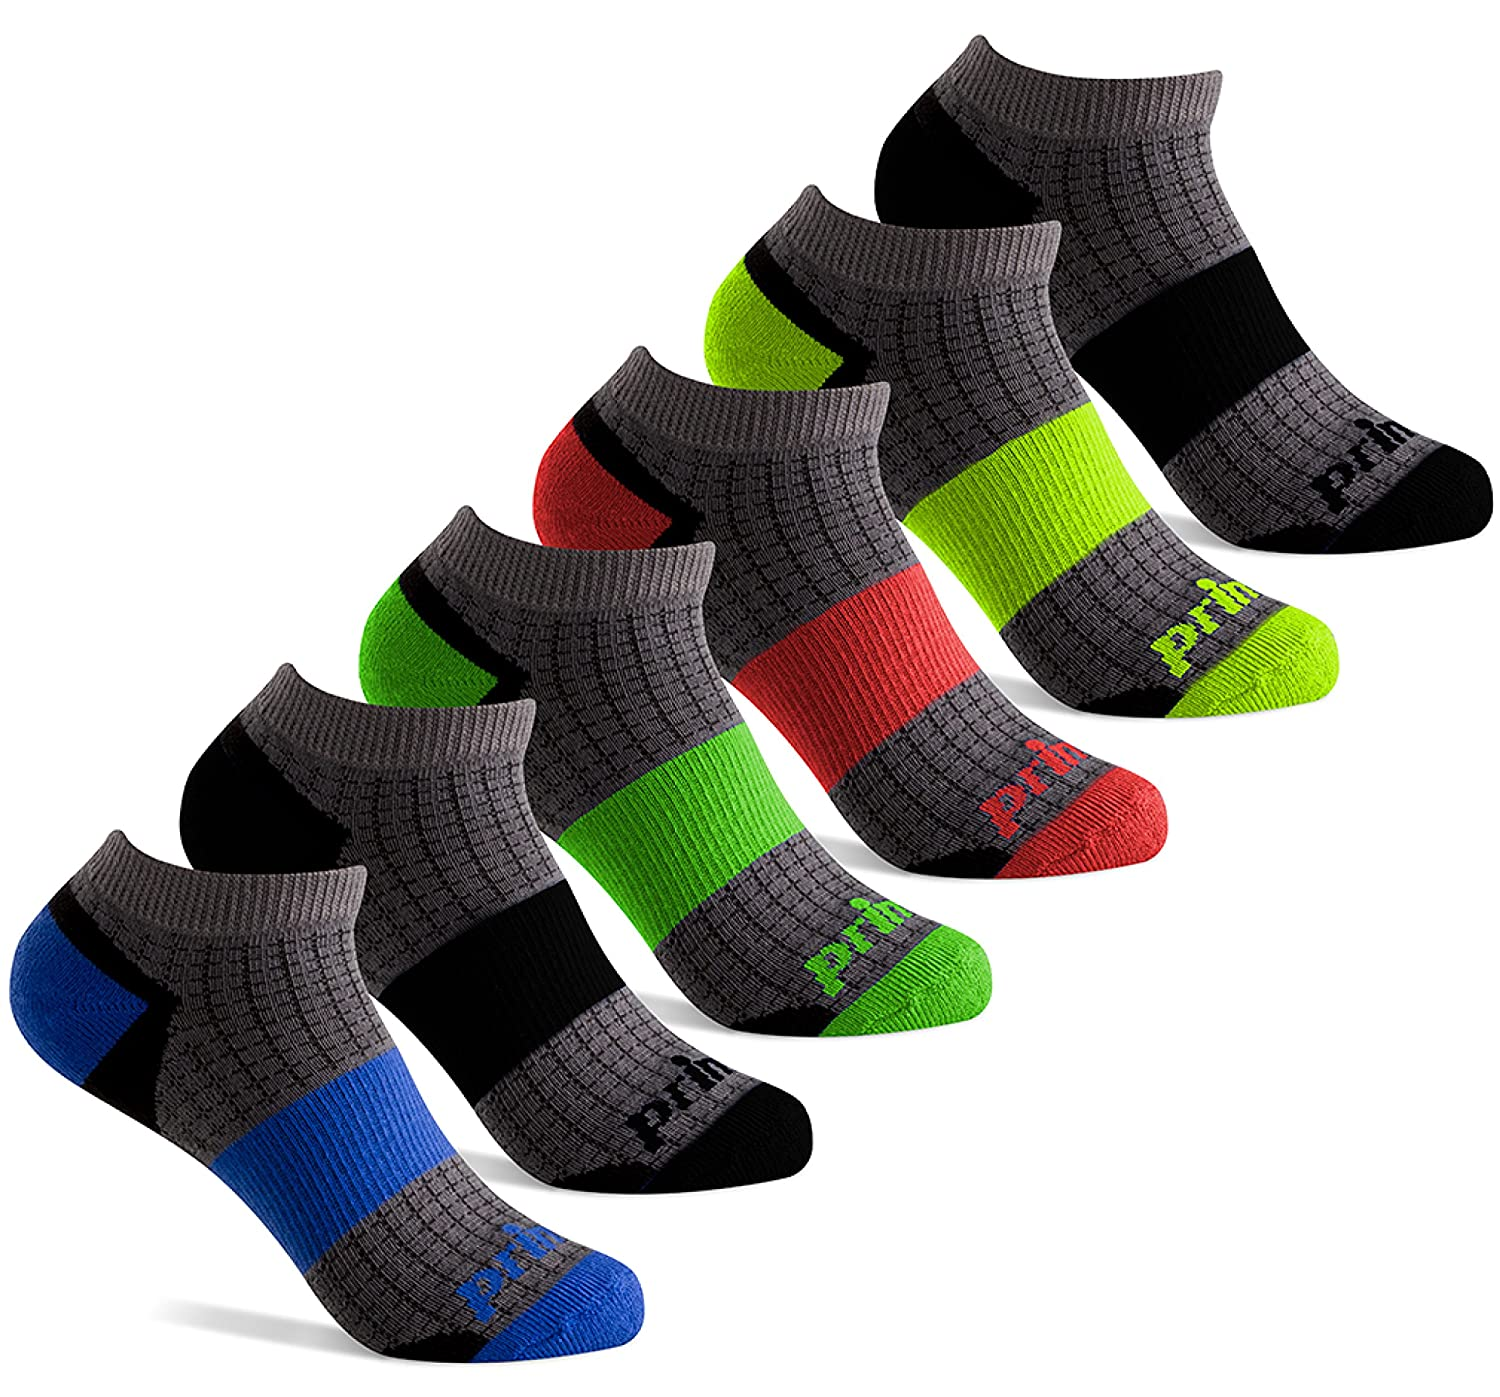 Prince Boys Low Cut Athletic Socks with Cushion for Active Kids